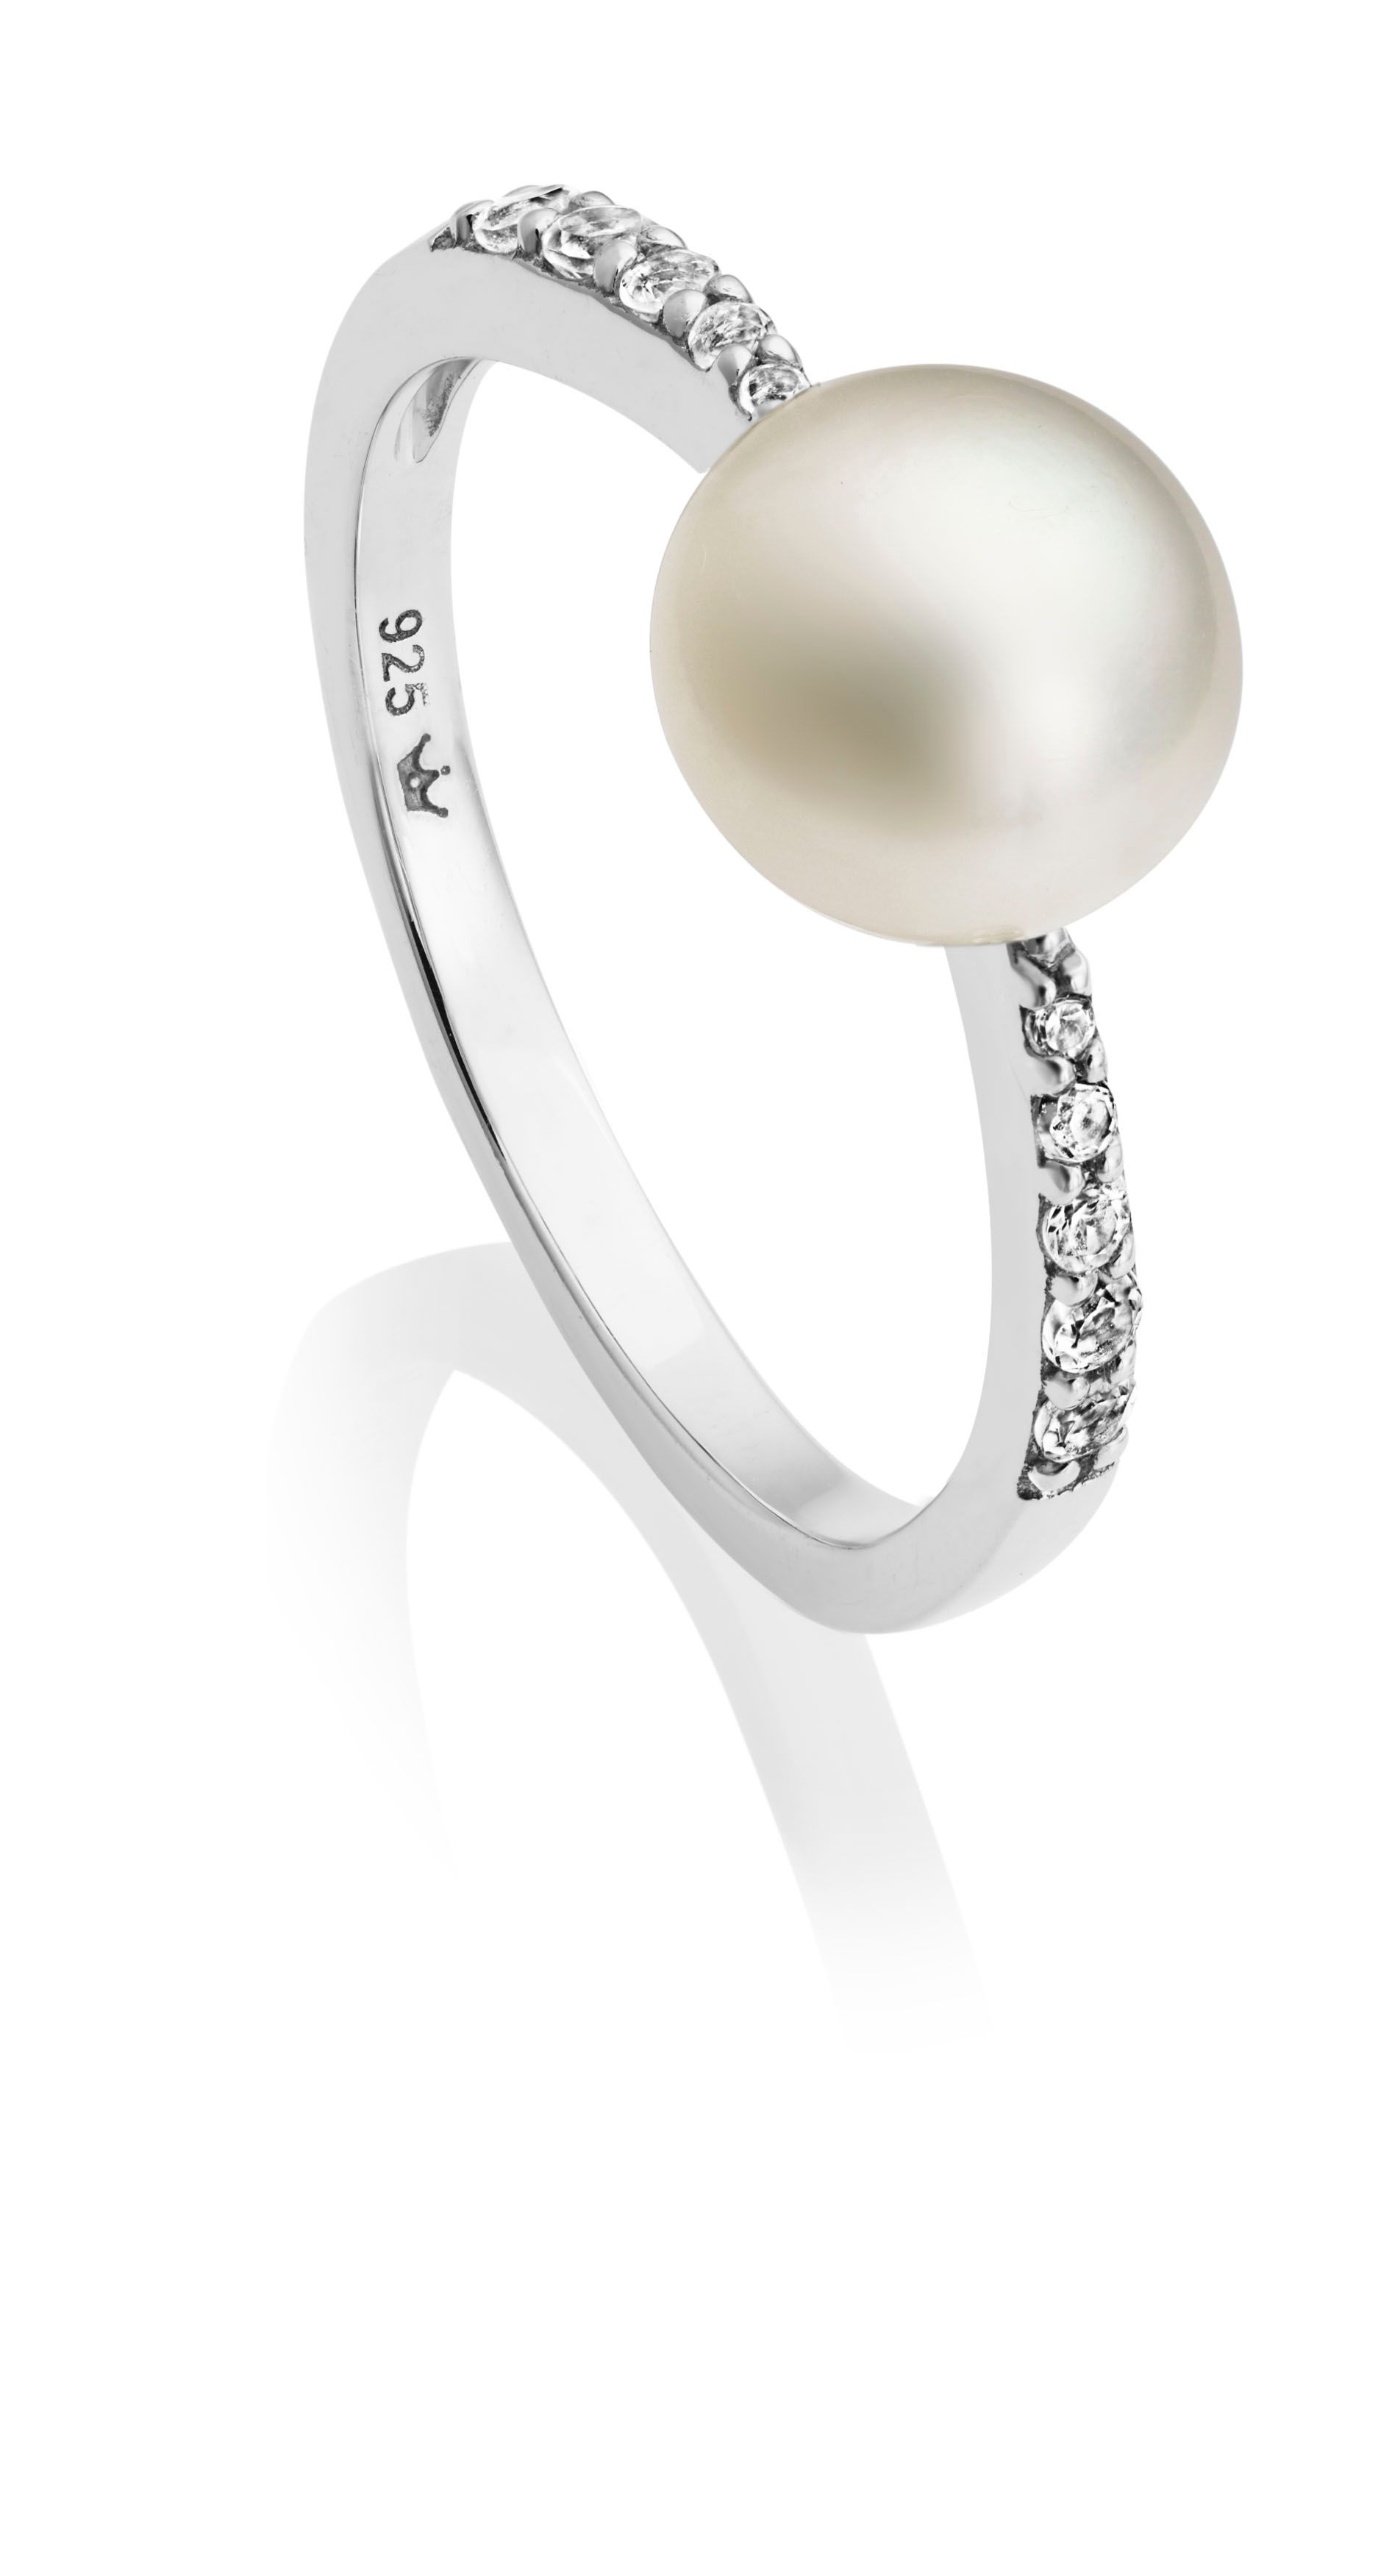 Jersey Pearl Jersey Pearl Freshwater Pearl and White Topaz Ring, White